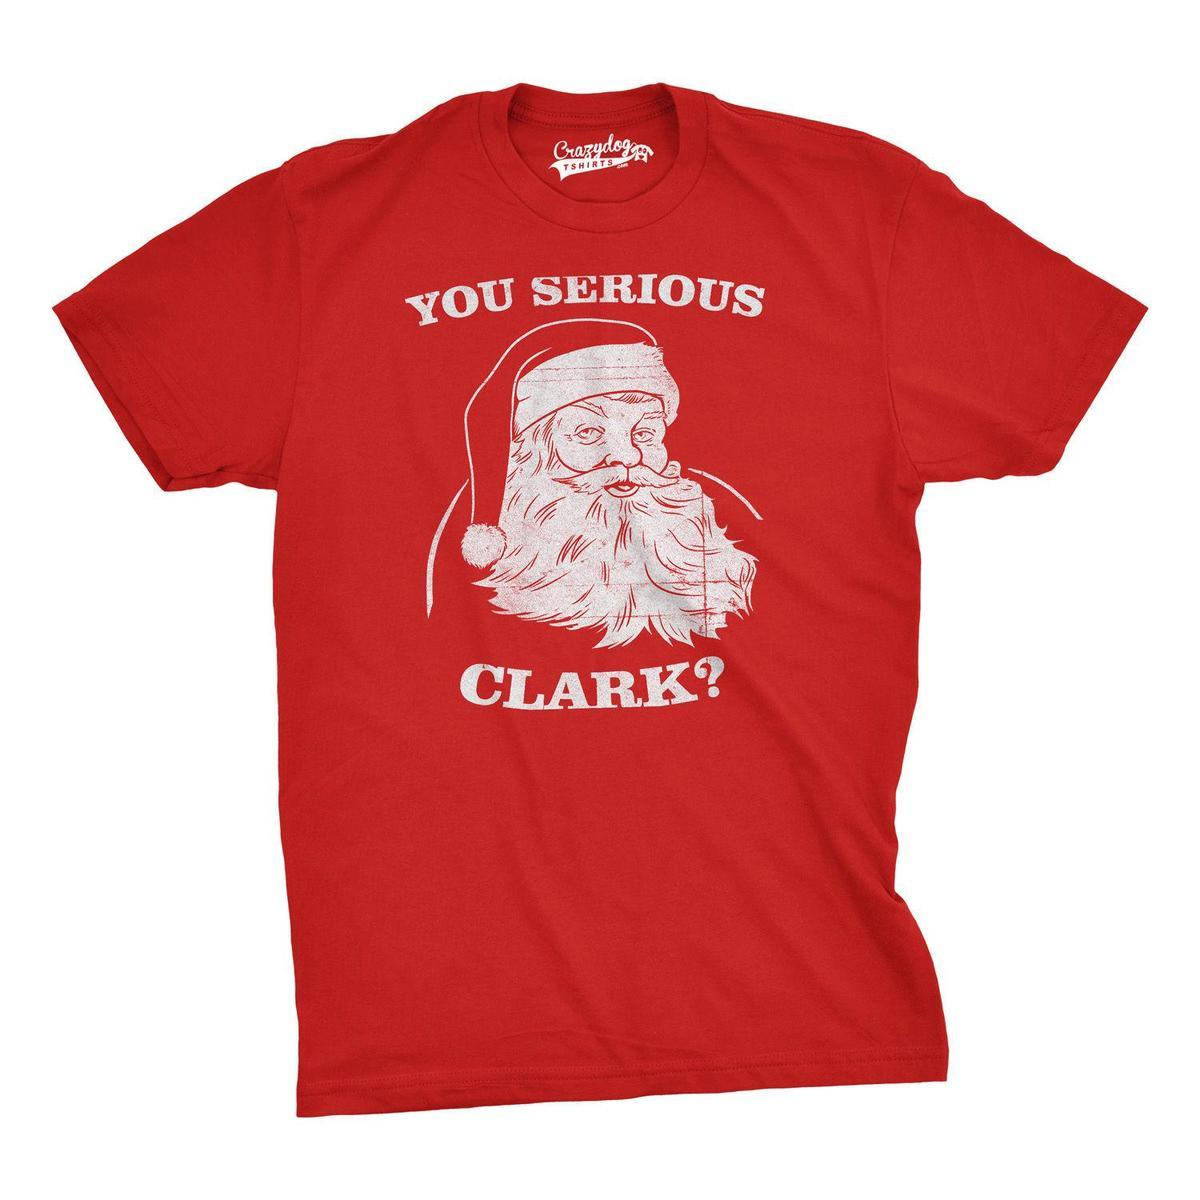 fa6a9476bdfd1 You Serious Clark T Shirt Funny Christmas Shirt Xmas Movie Tee Metal T  Shirts Cotton Shirt From Amesion42